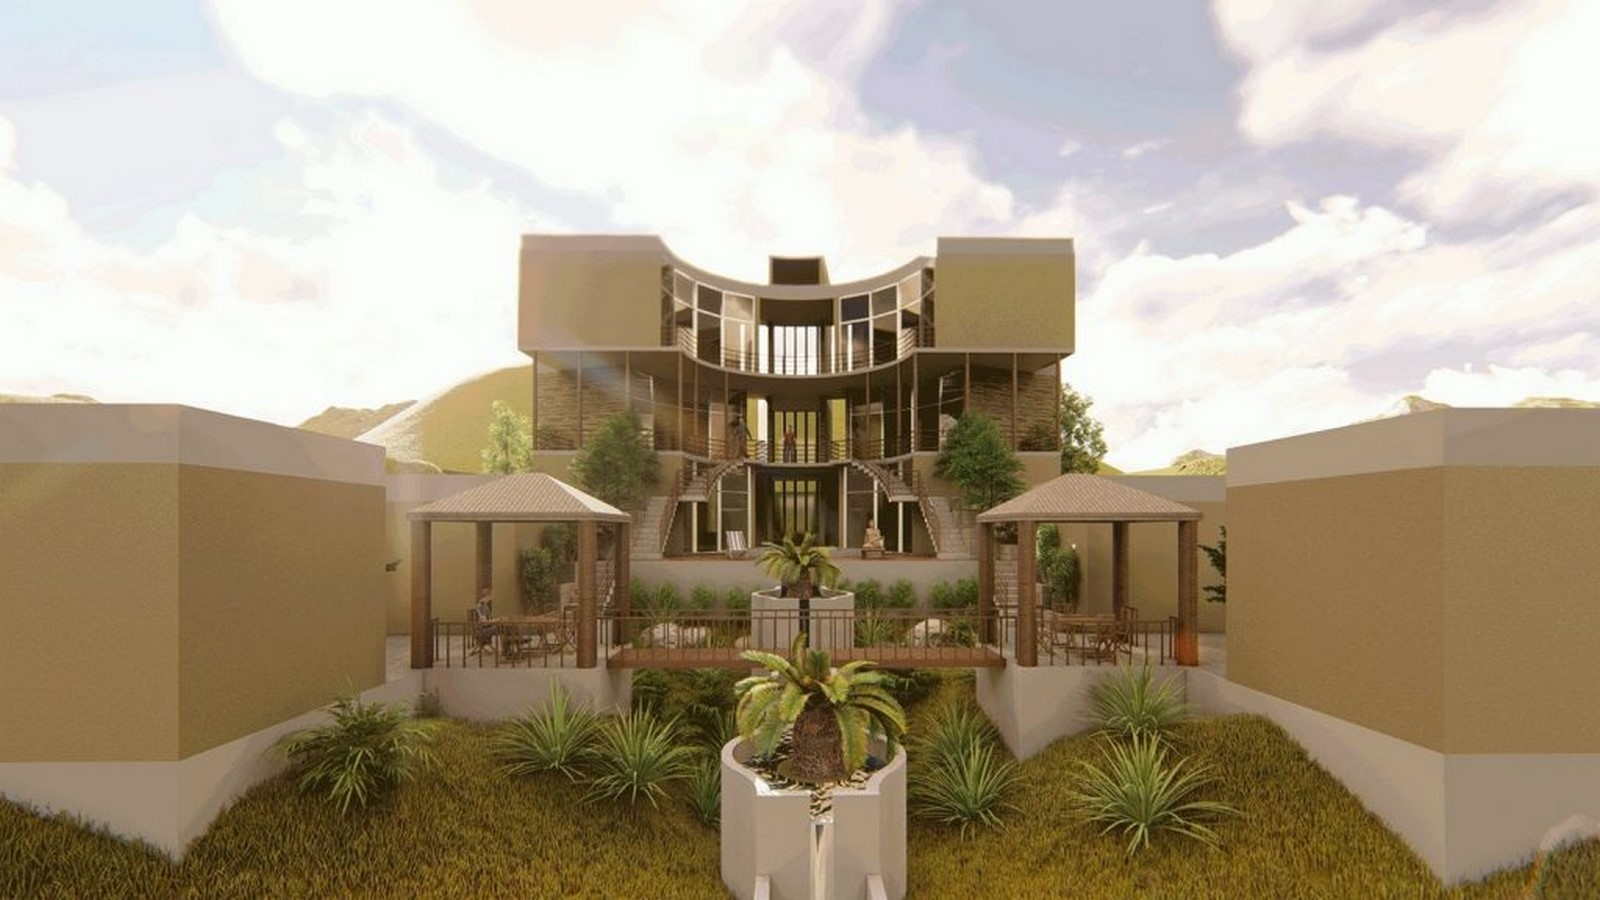 10 Upcoming sustainable projects by famous architects - Sheet4